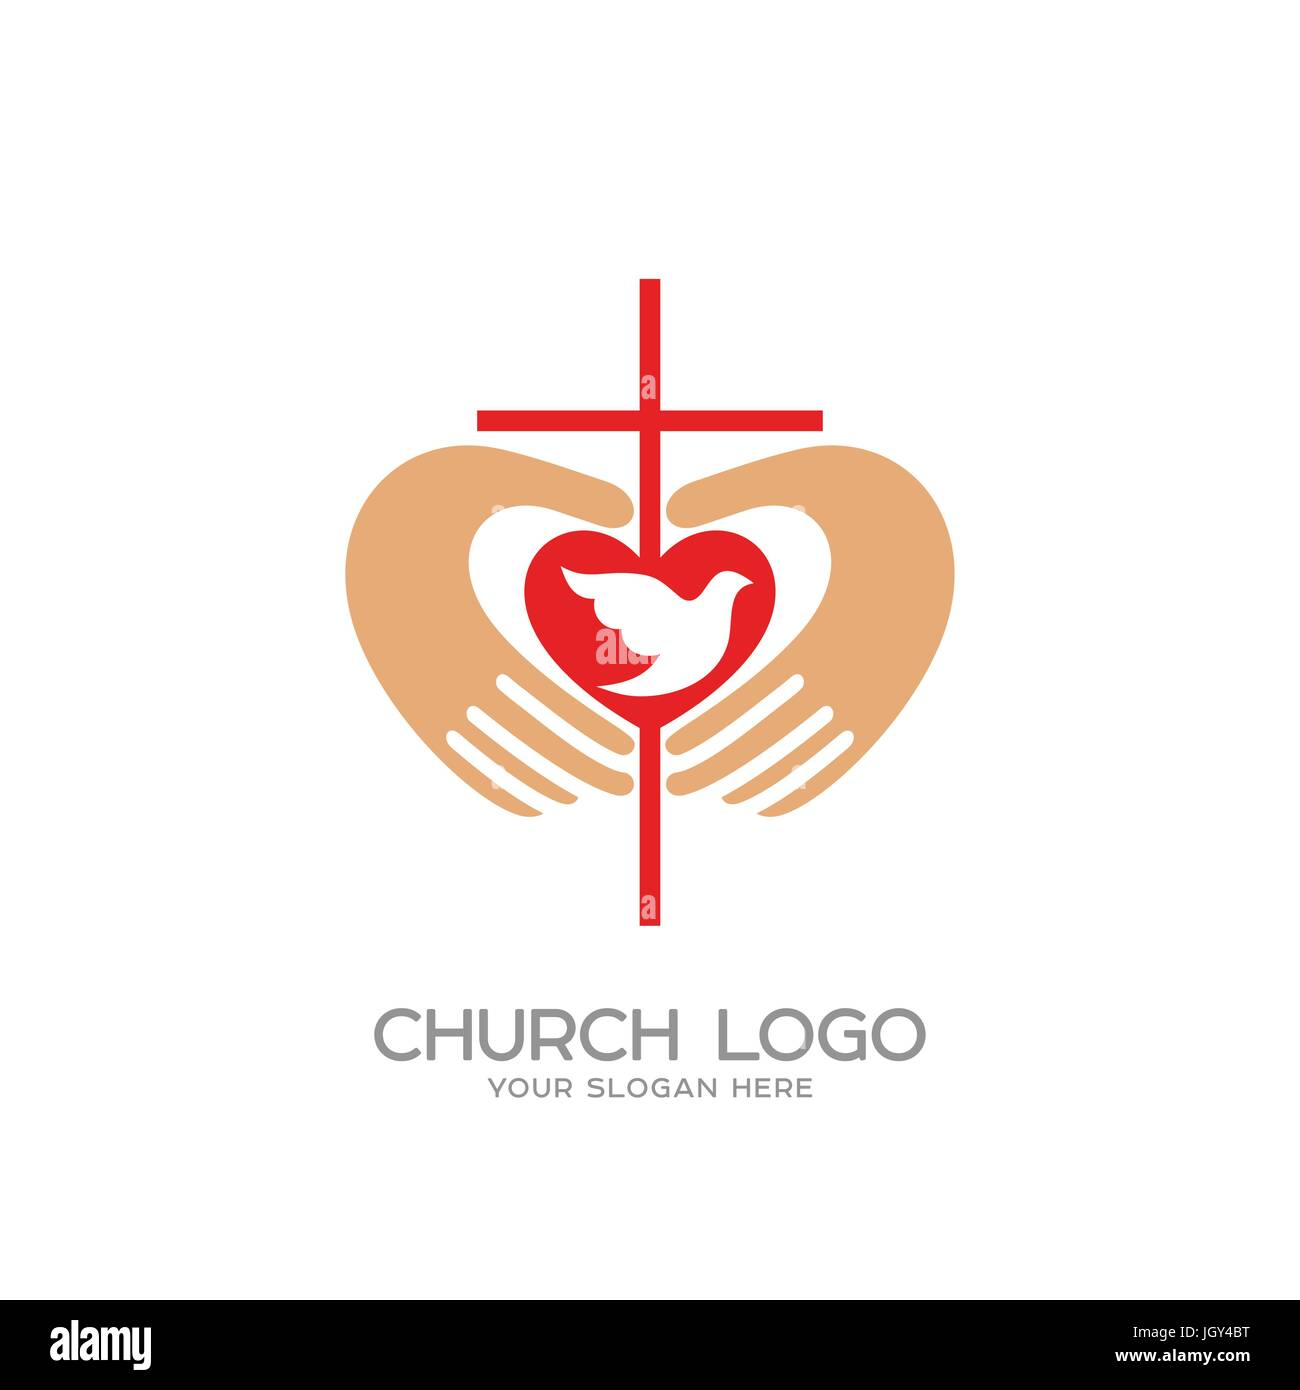 Church logo christian symbols the cross and the hands of christ church logo christian symbols the cross and the hands of christ the heart and the dove altavistaventures Images